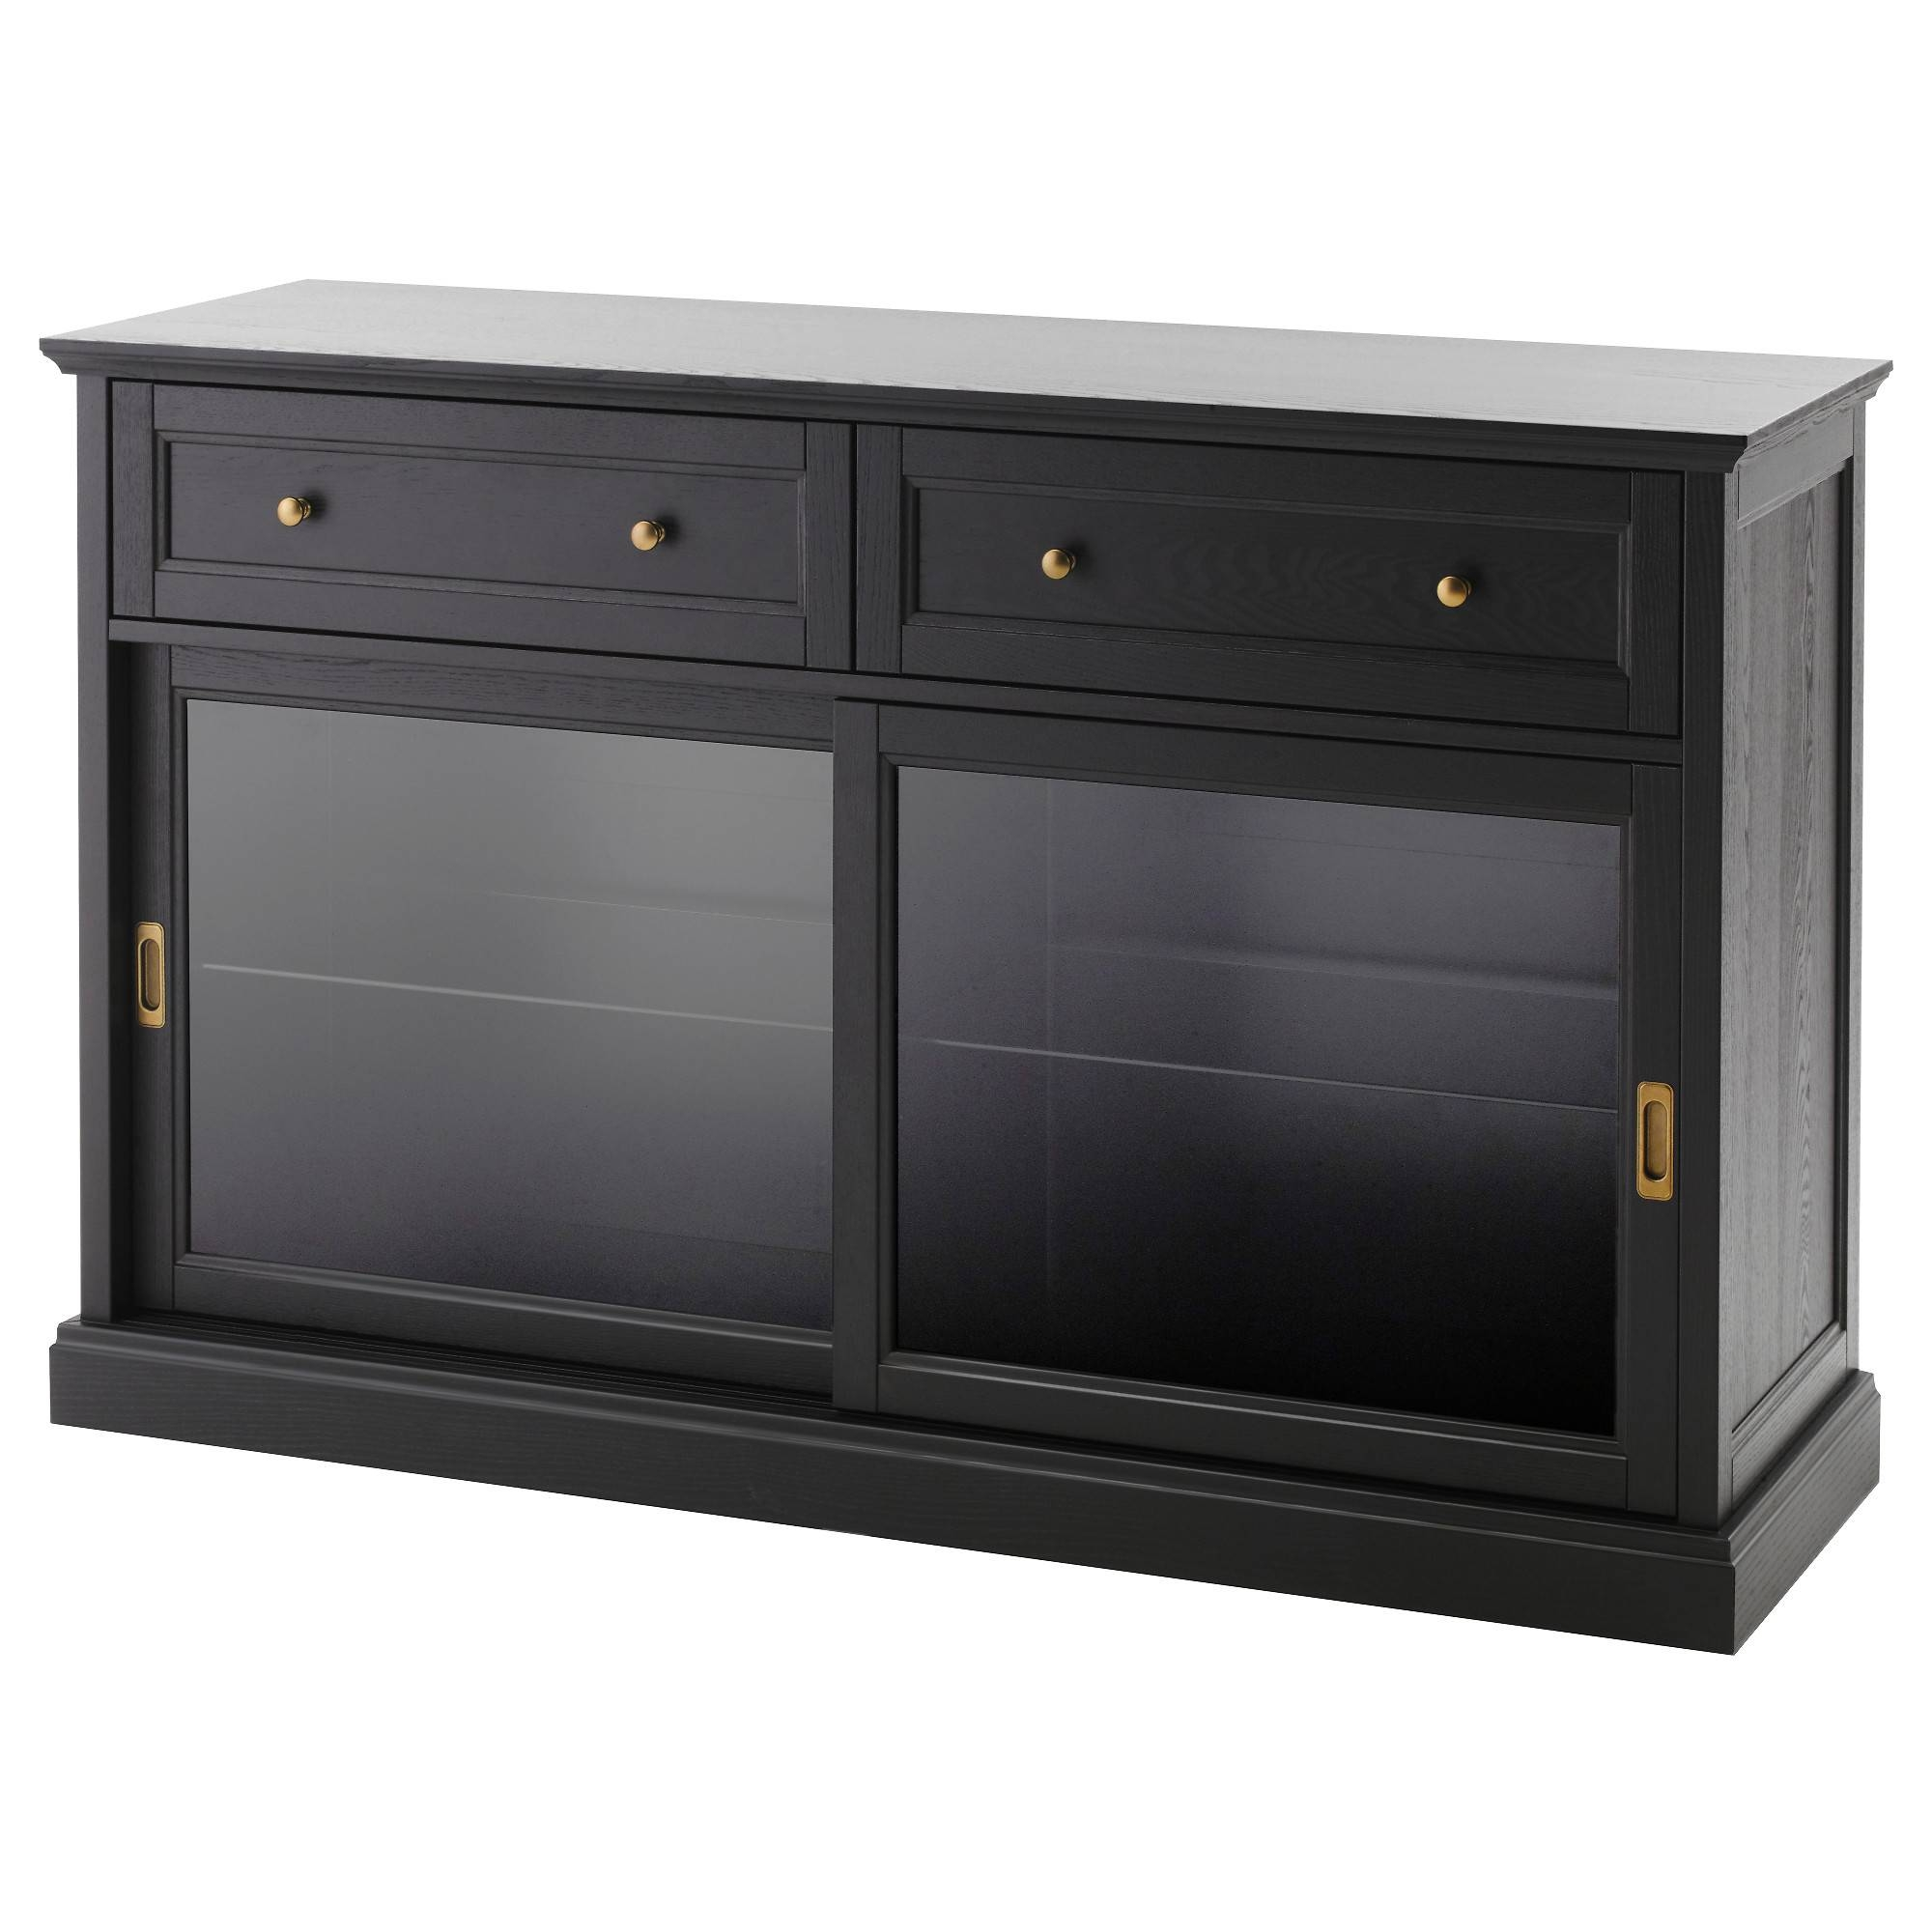 Sideboards & Buffet Cabinets | Ikea With Regard To Cheap Sideboards Cabinets (View 12 of 15)